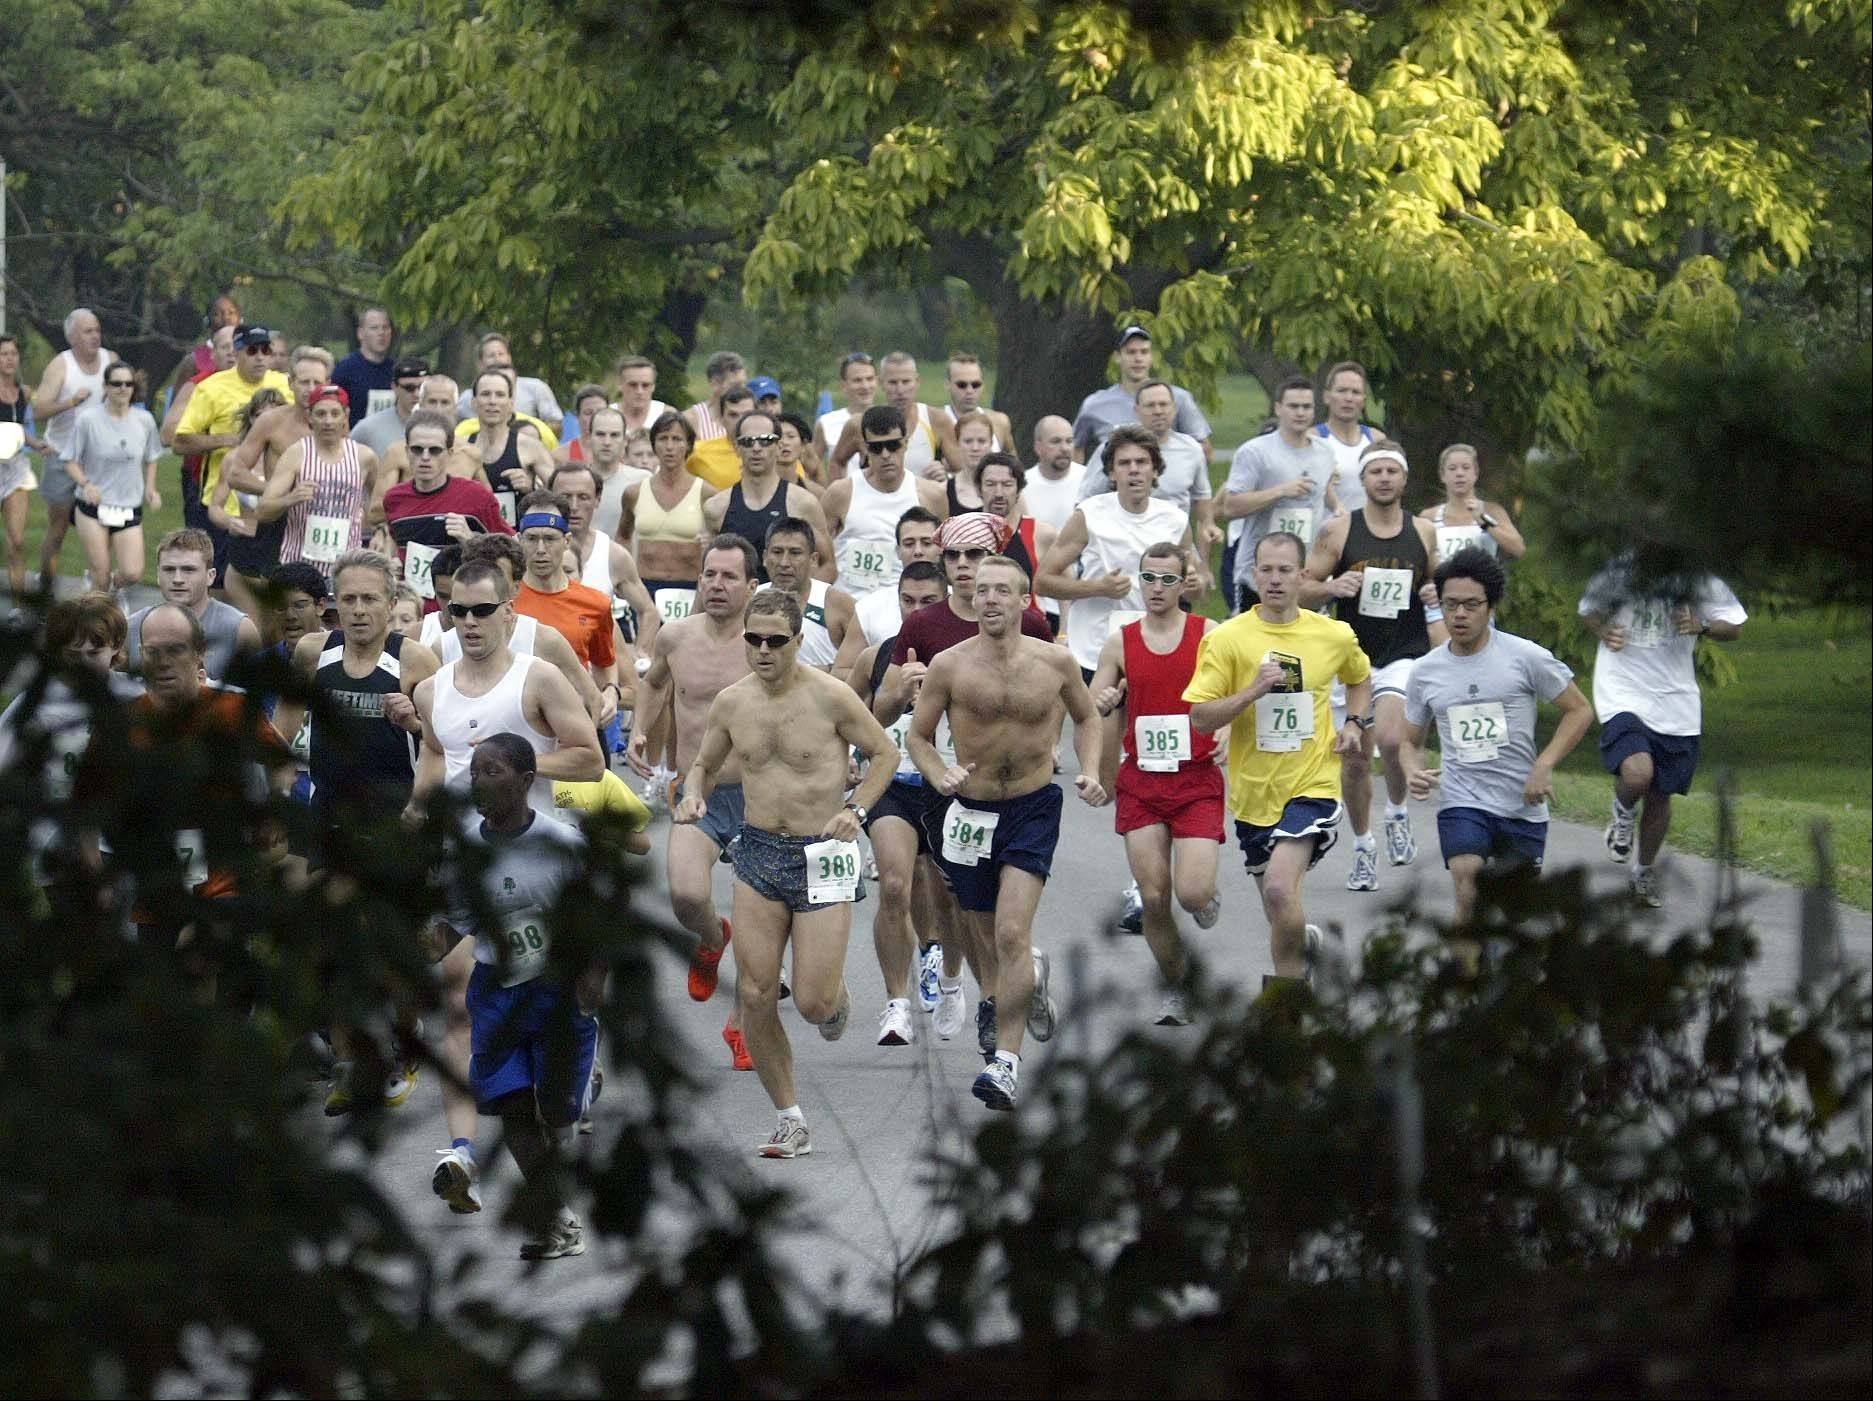 More than 2,000 people are expected to participate in the arboretum's 5K run and walk on Sunday, Sept. 30.